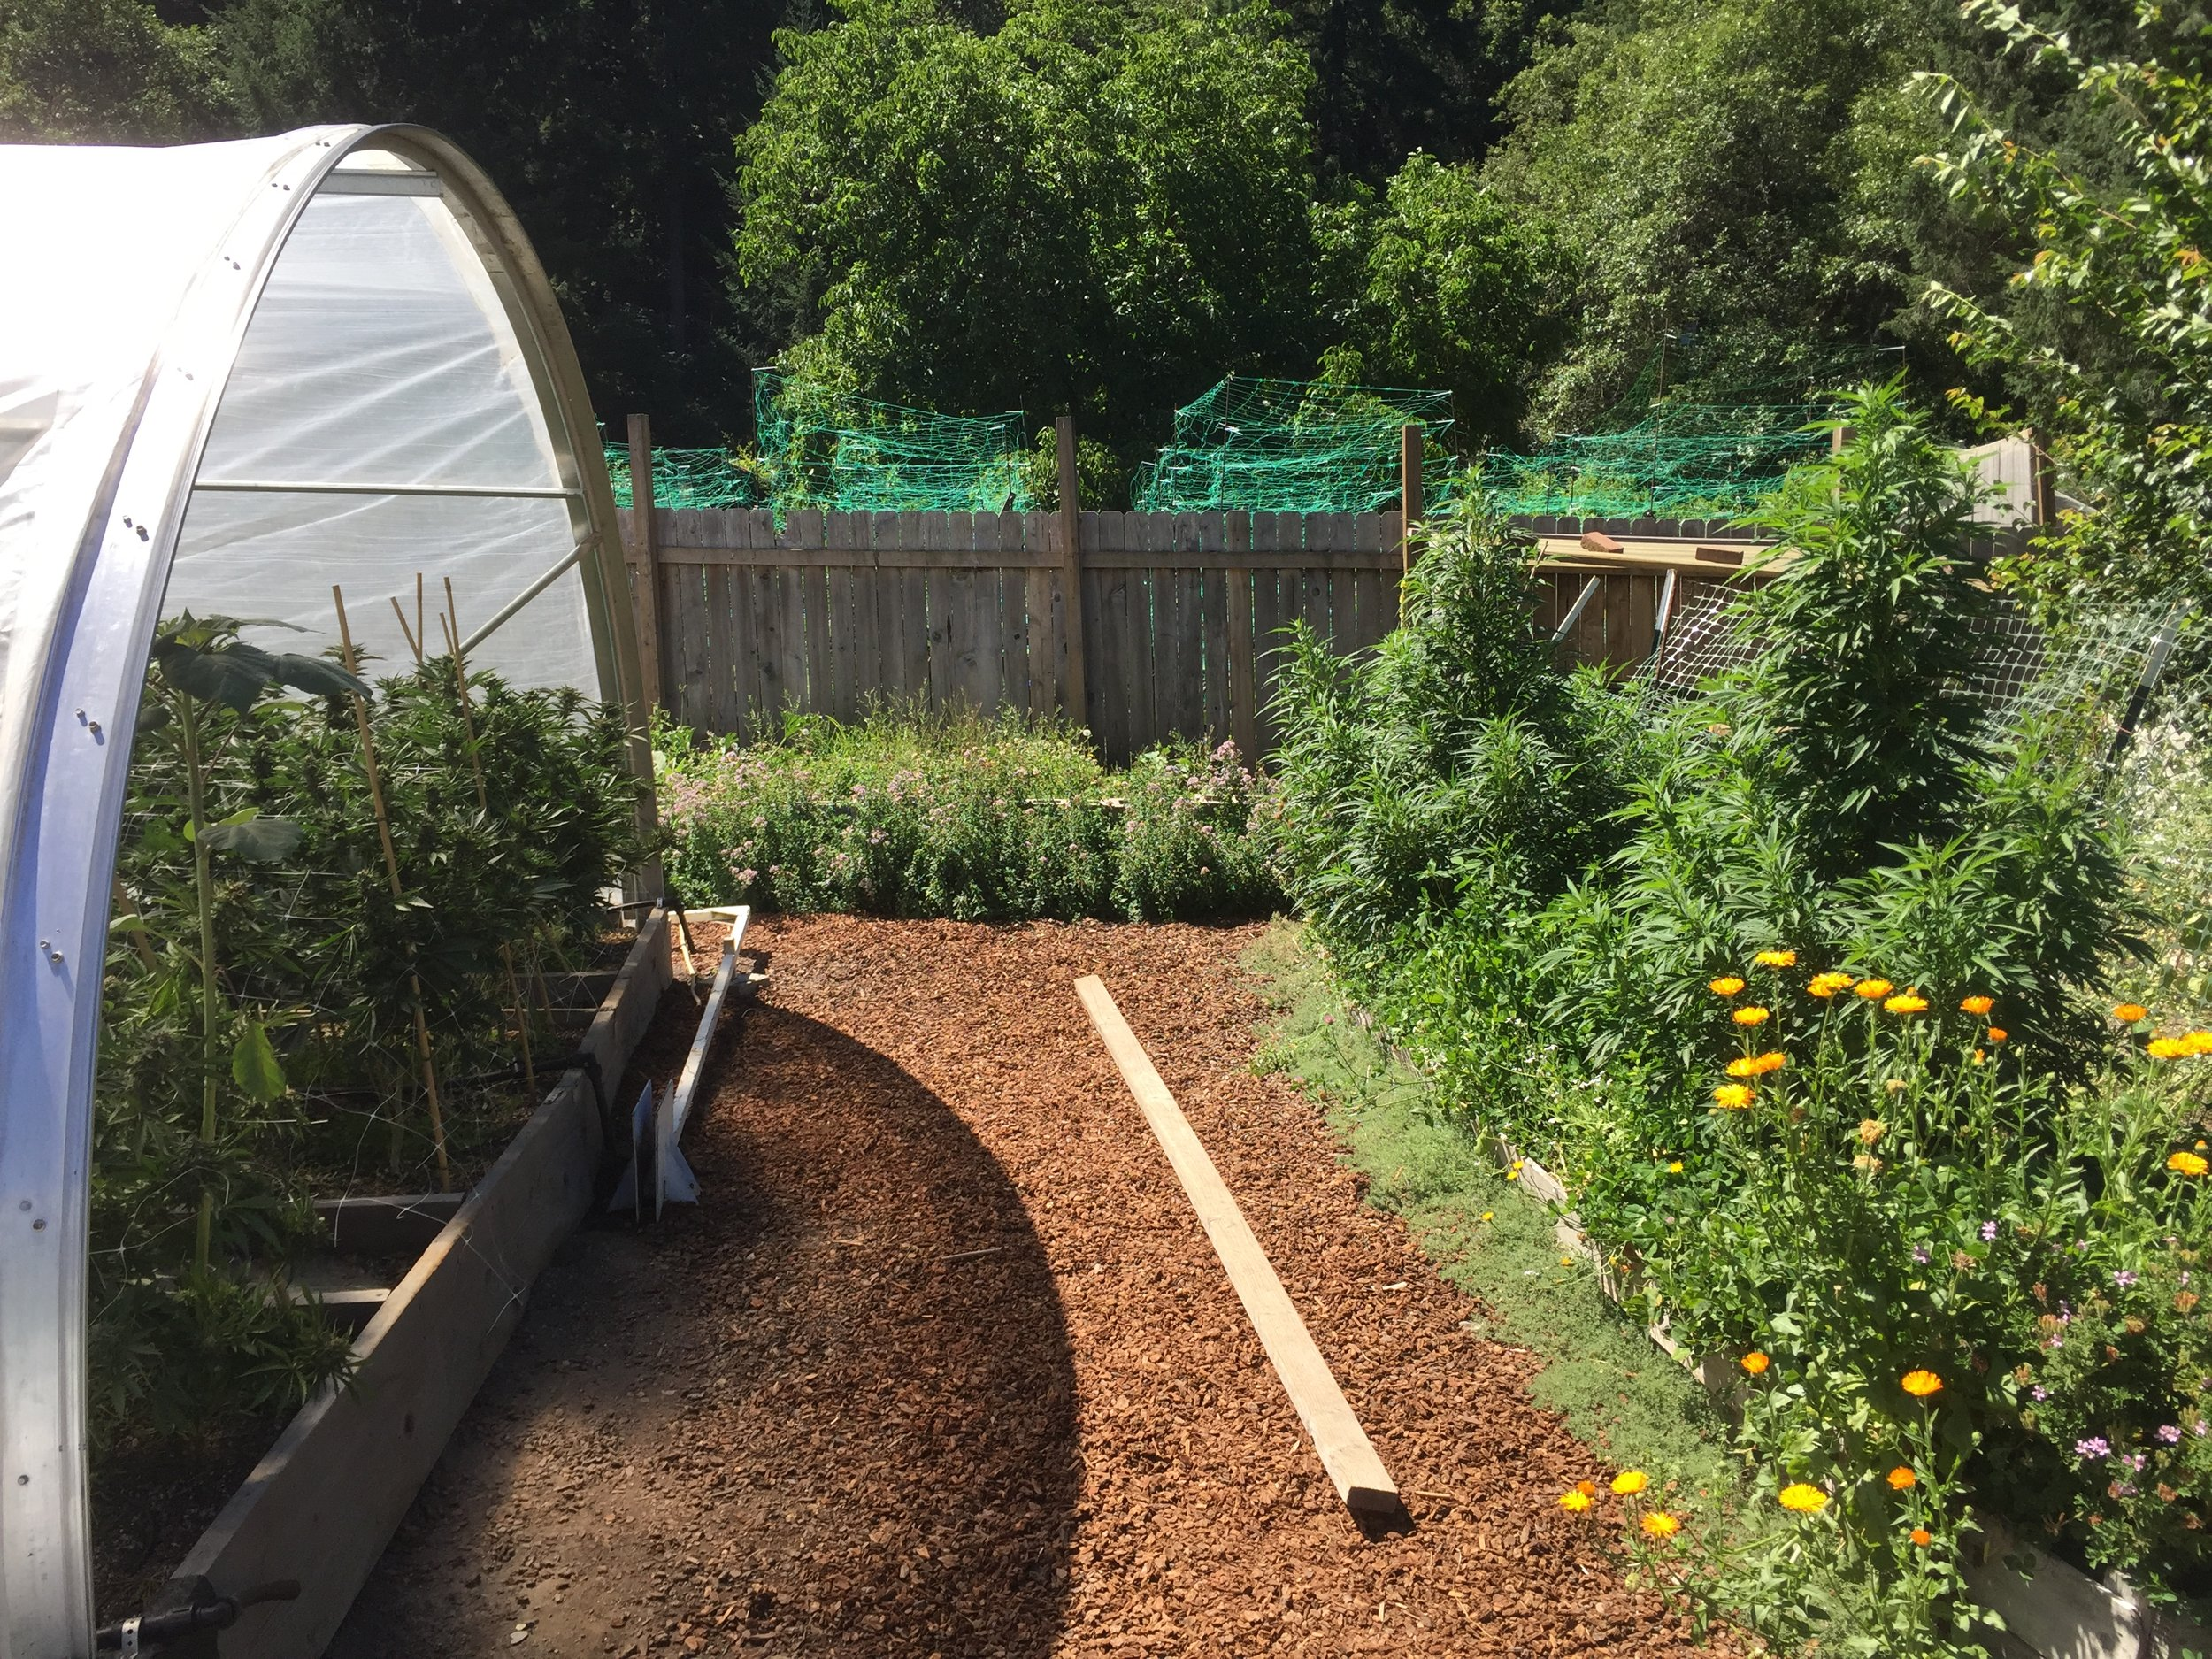 This small farm exemplifies the model of permaculture for cannabis. Borders of oregano and ground thyme provide natural pest repellents and intercropped flowering companion plants provide habitat for beneficials.